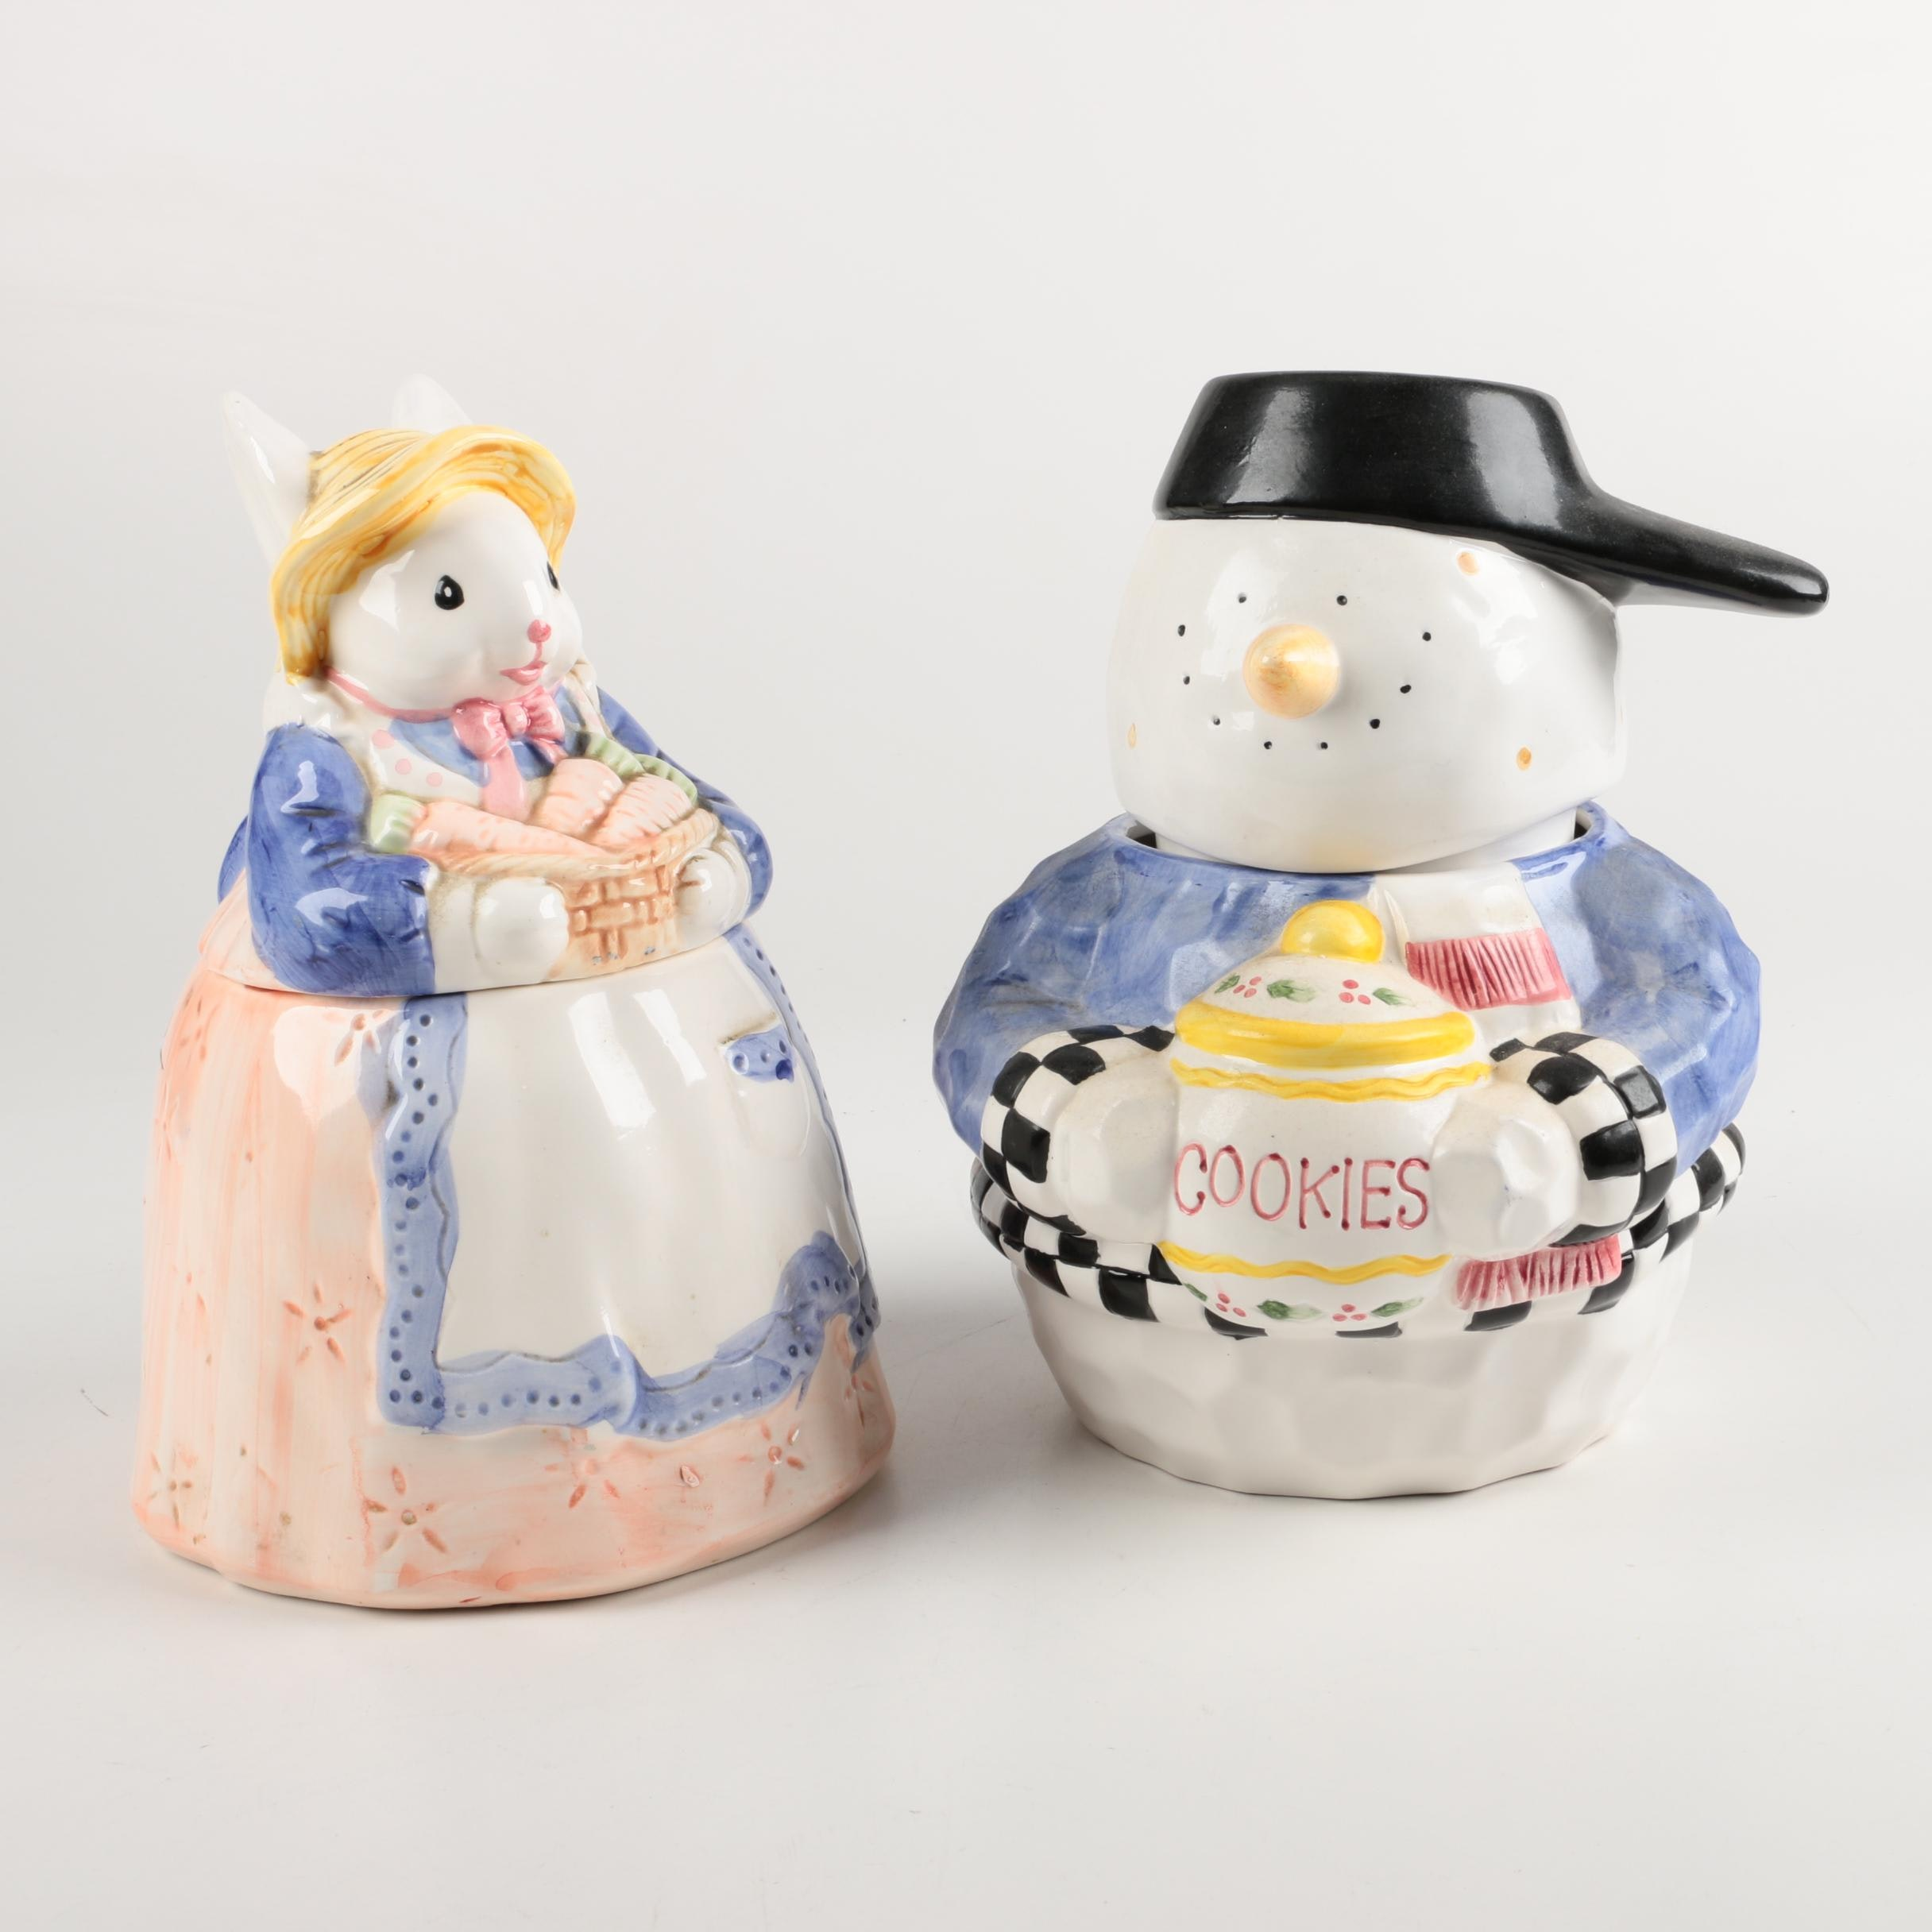 Rabbit and Snowman Ceramic Cookie Jars